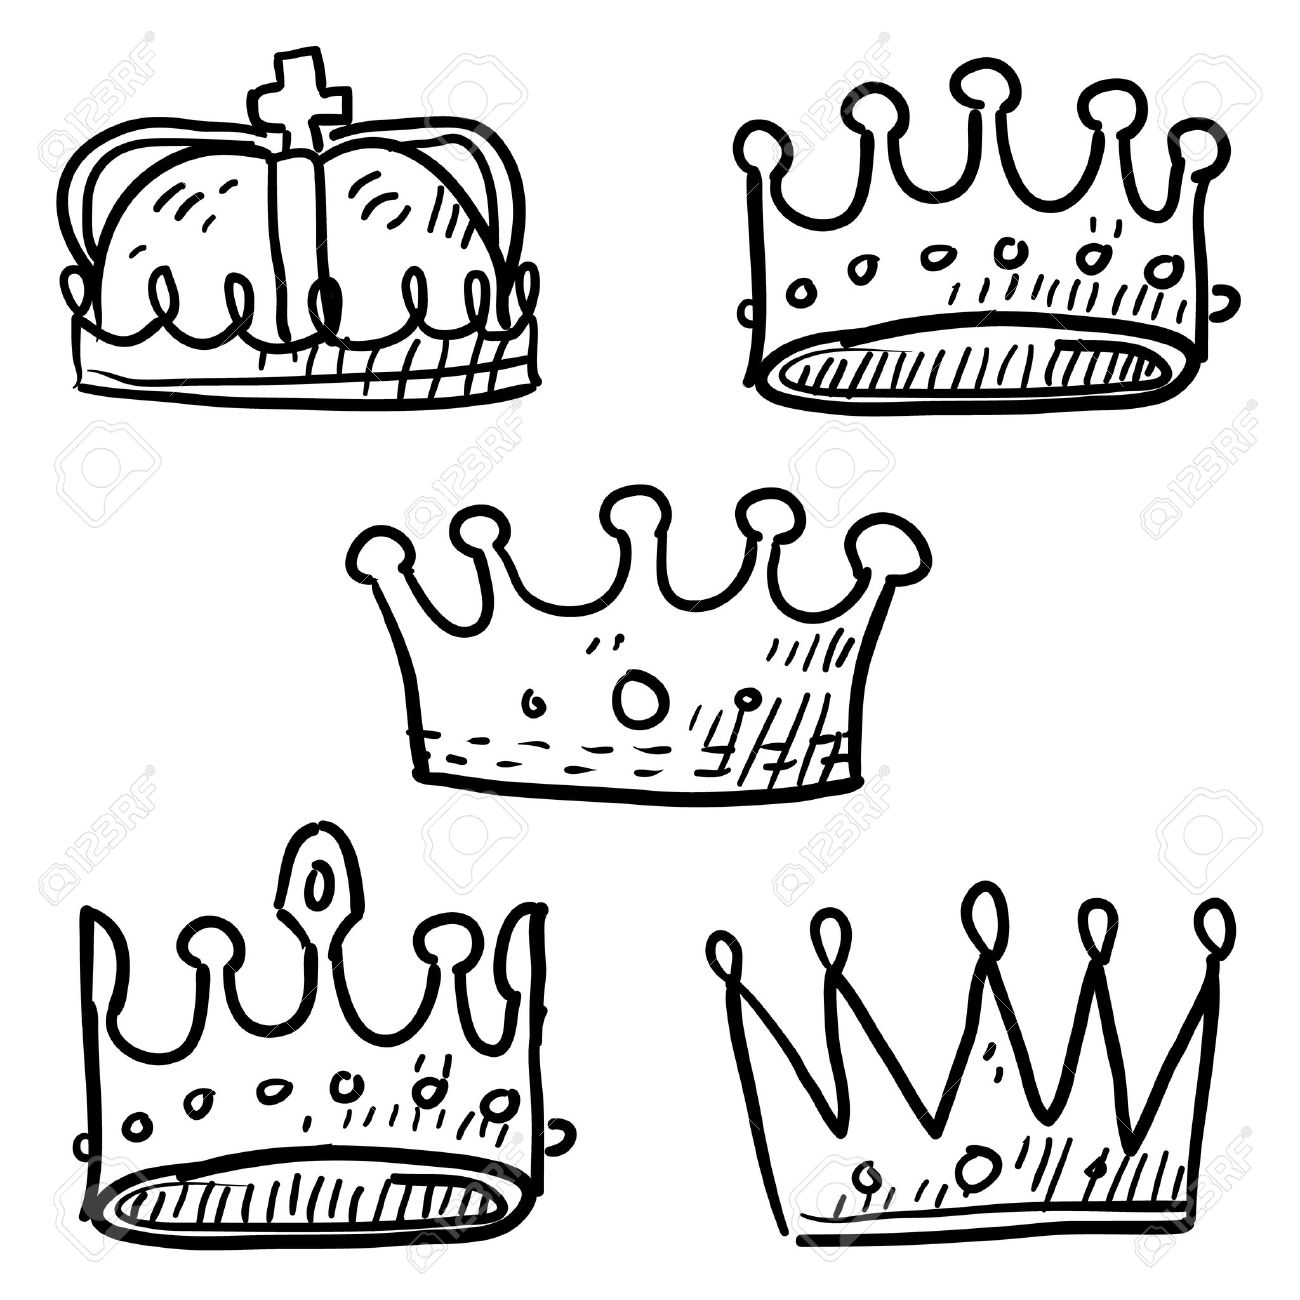 bloodline cliparts stock vector and royalty bloodline bloodline doodle style set of royal crowns in vector format